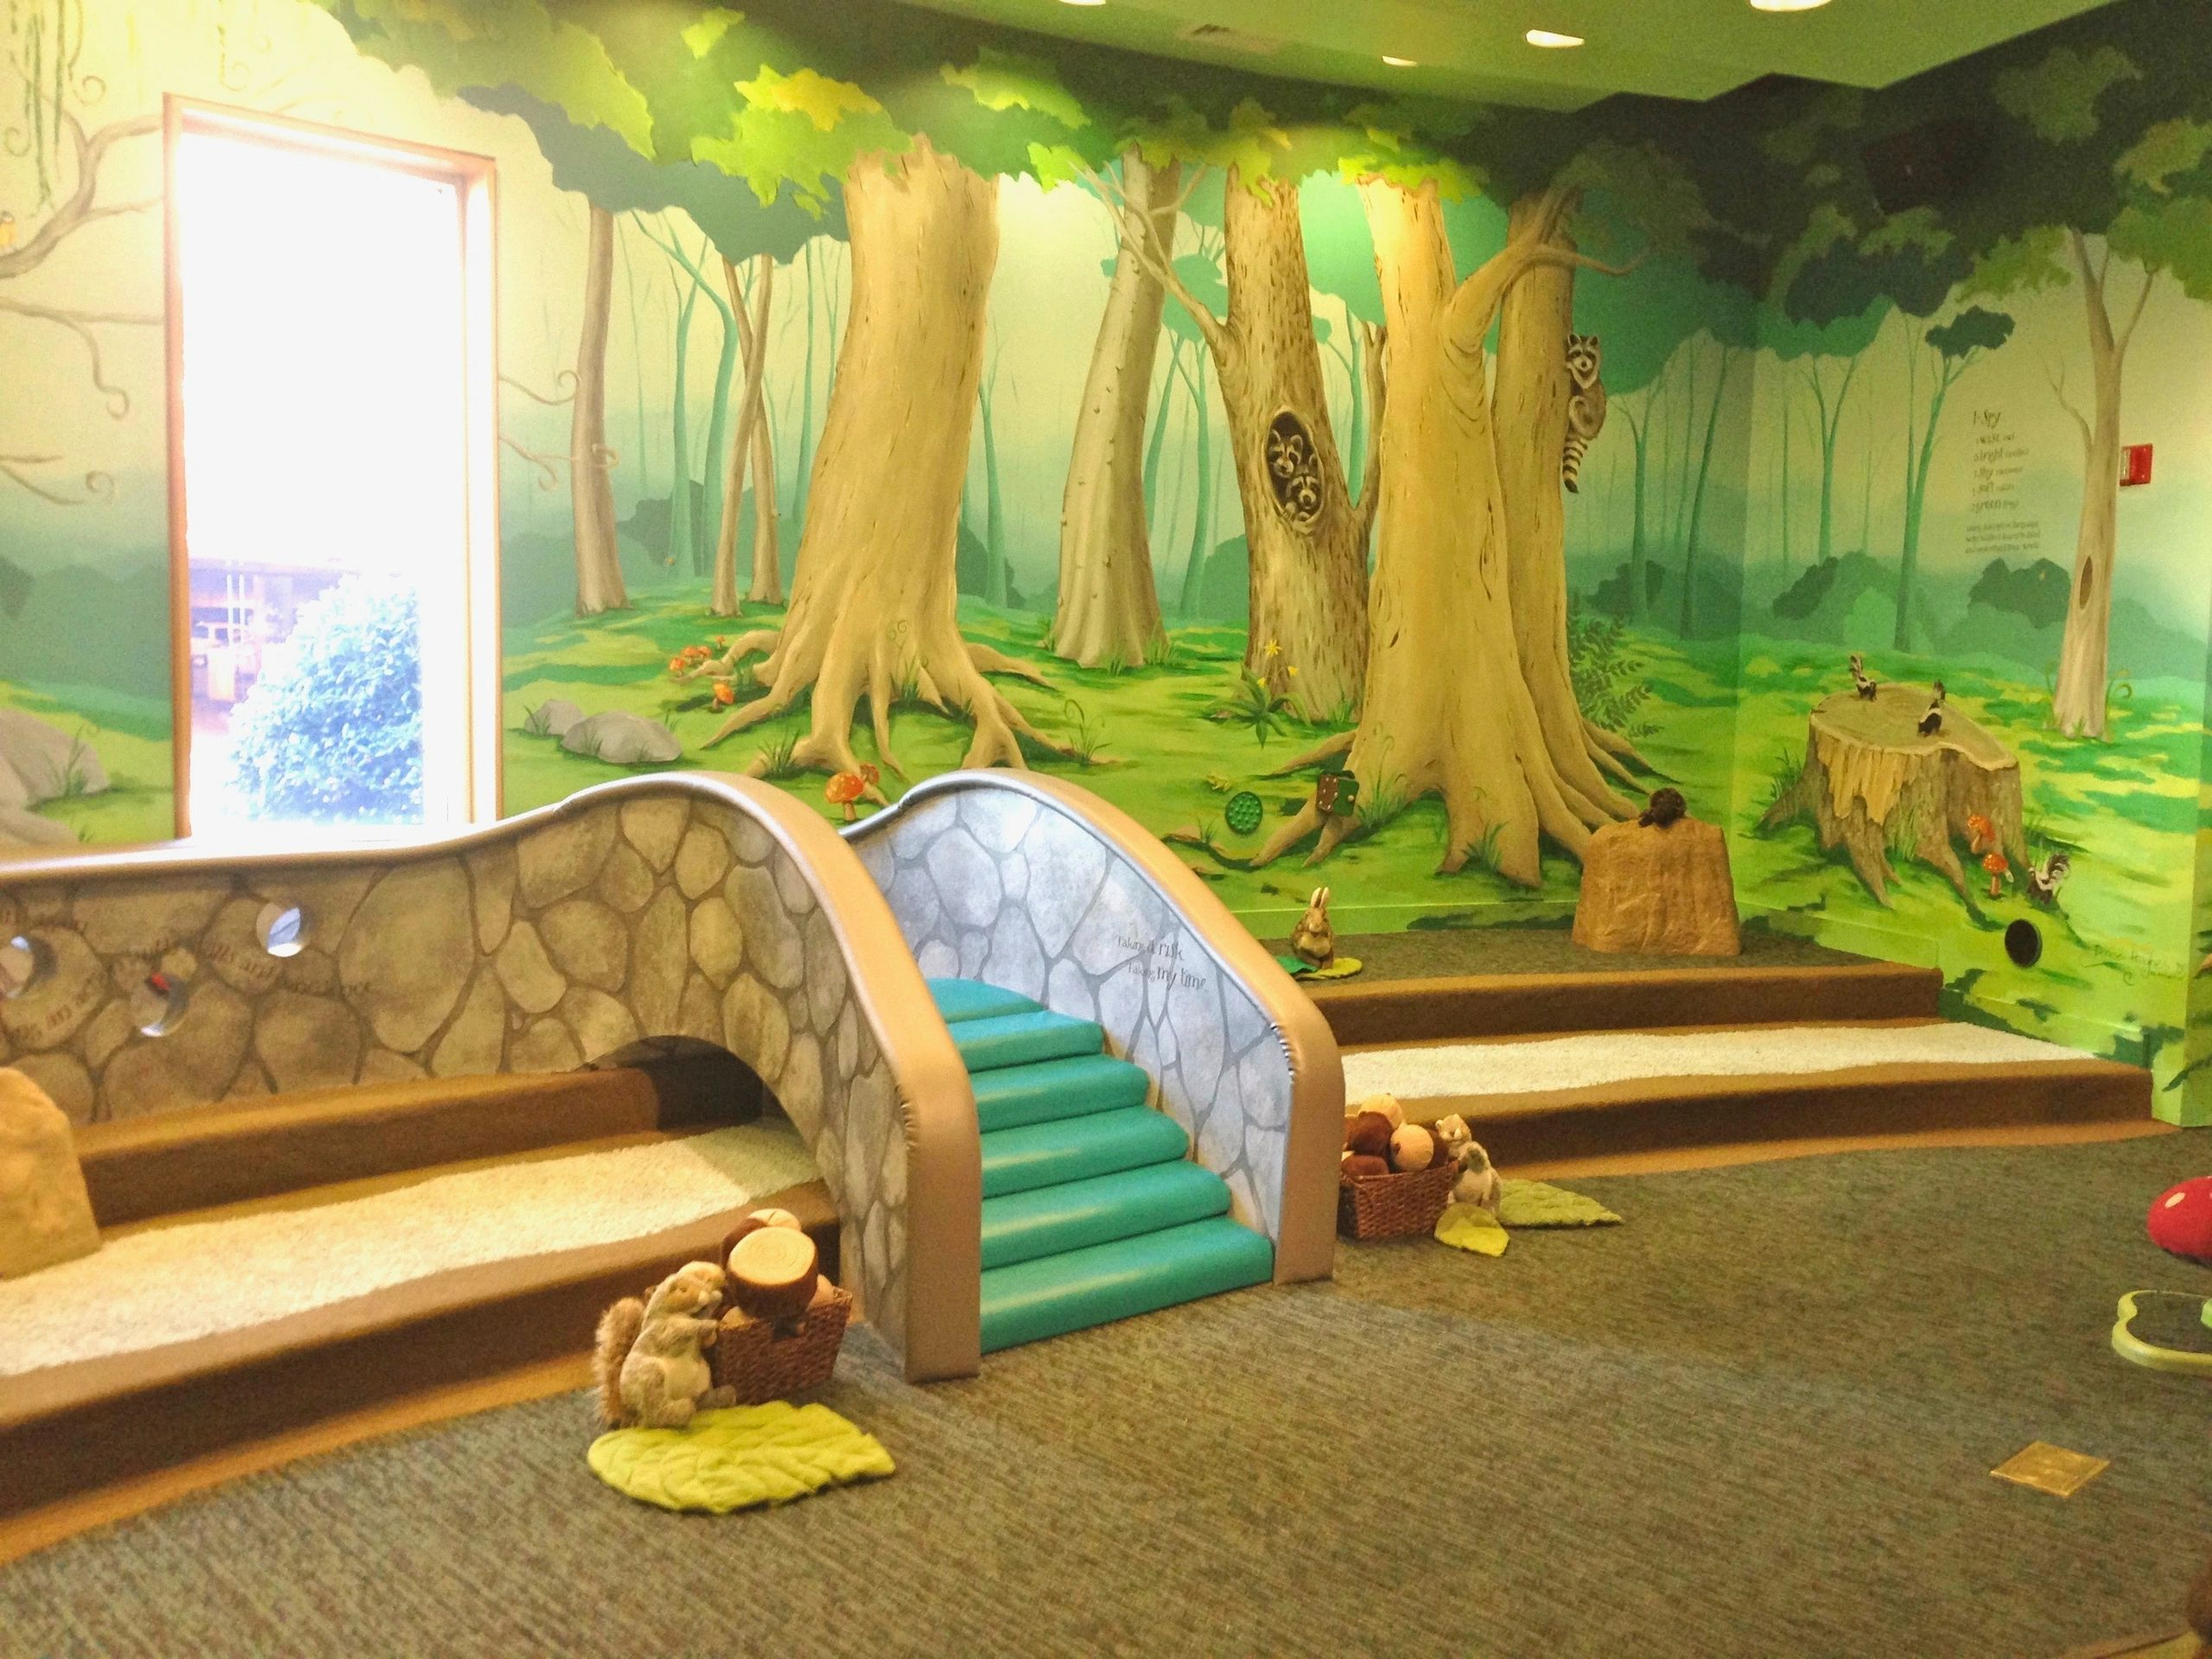 "{""blocks"":[{""key"":""6sp7k"",""text"":""Physical spaces and entrance ways become invitations for exploration with interactive murals such as this one in Toddler's Hollow at Marbles Kids Museum, by Denise Hughes"",""type"":""unstyled"",""depth"":0,""inlineStyleRanges"":[],""entityRanges"":[],""data"":{}}],""entityMap"":{}}"